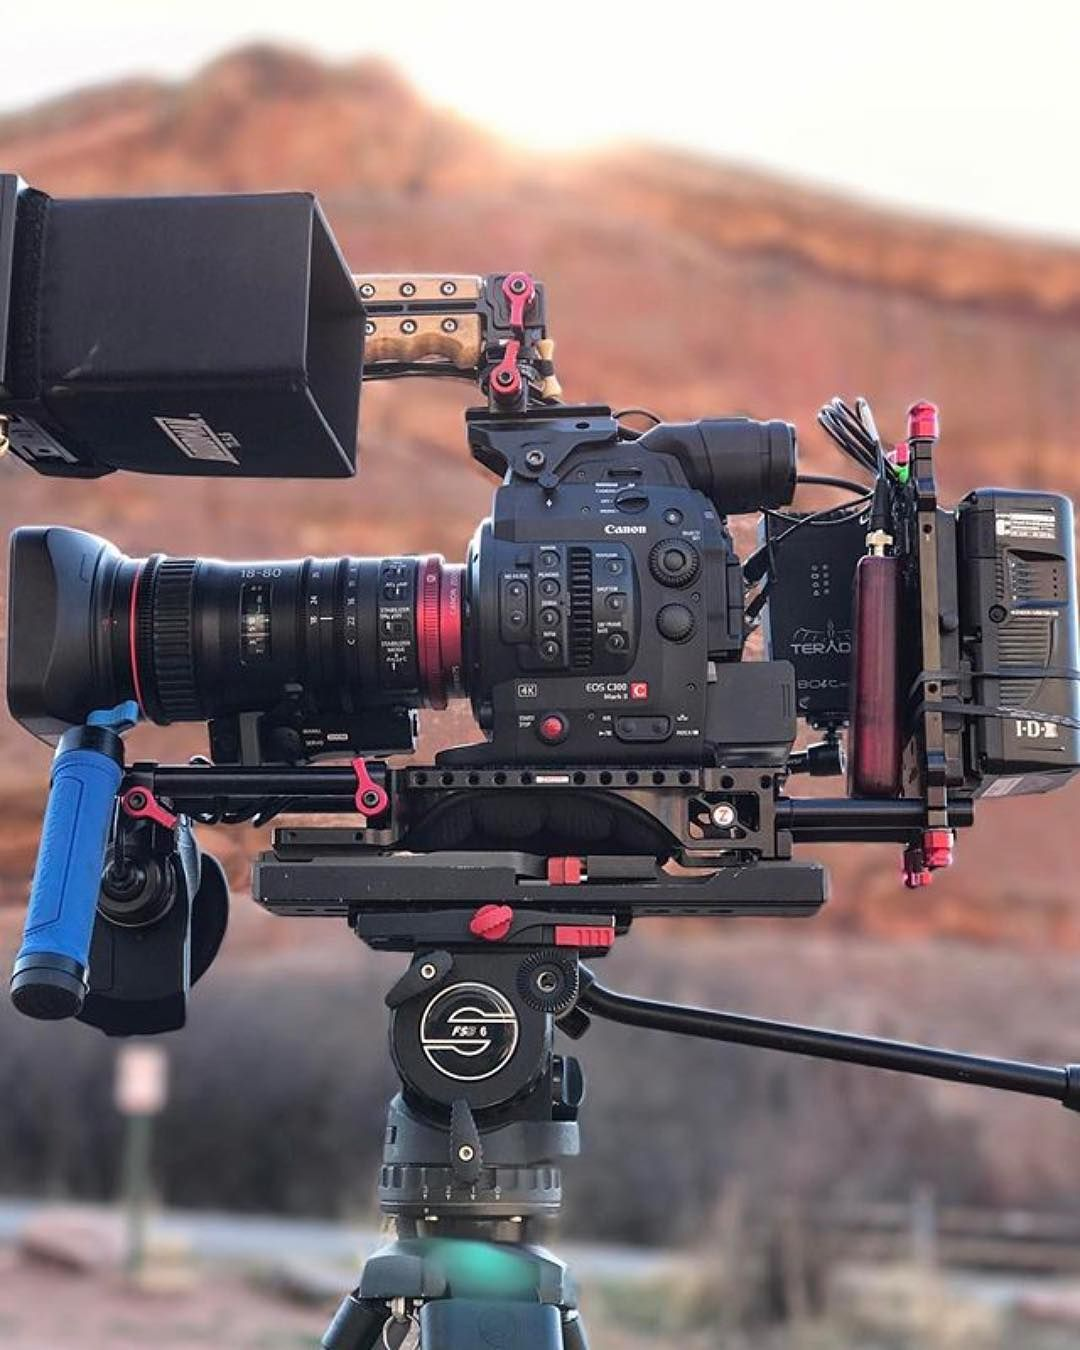 Sweet Canon C300 Mark II rig  What would you film with this